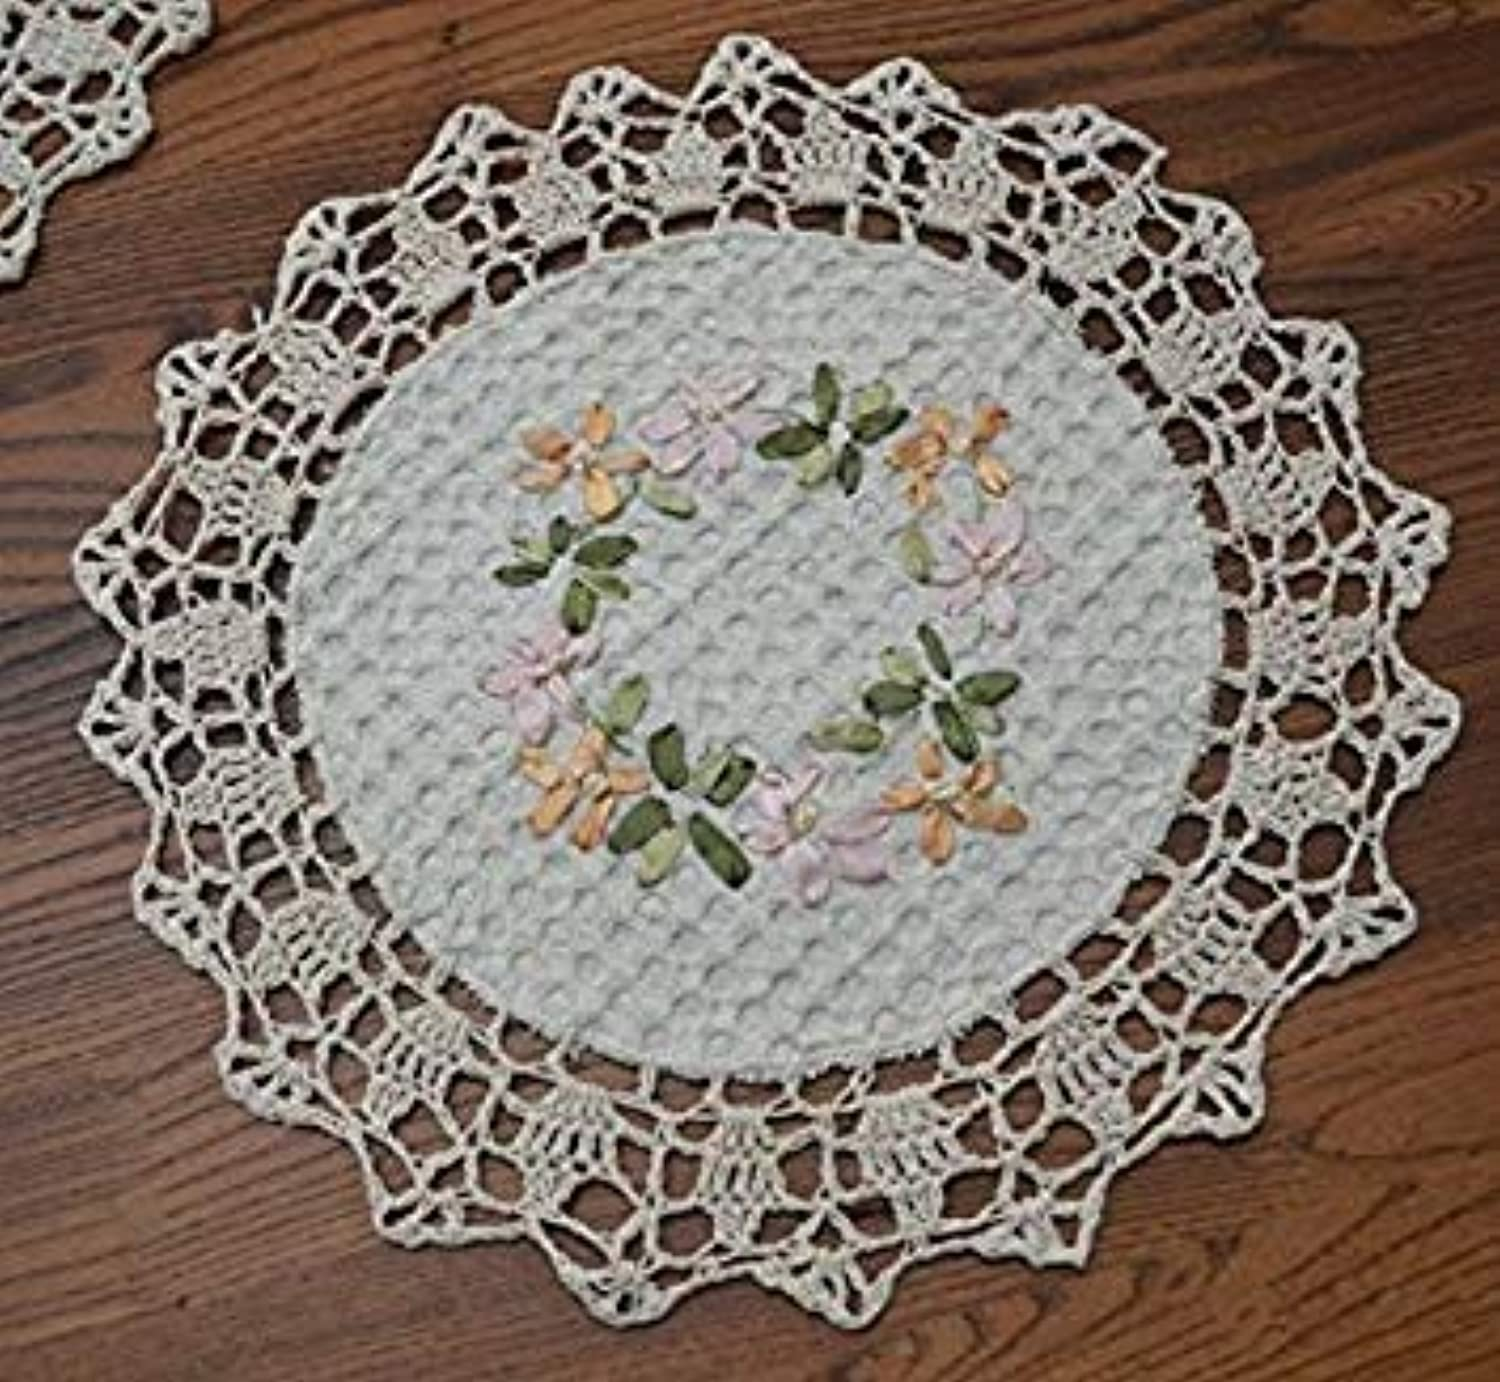 100% Cotton Hand Made Crochet with Hand Emboridery Doily mats Cup mat Coaster,30CM